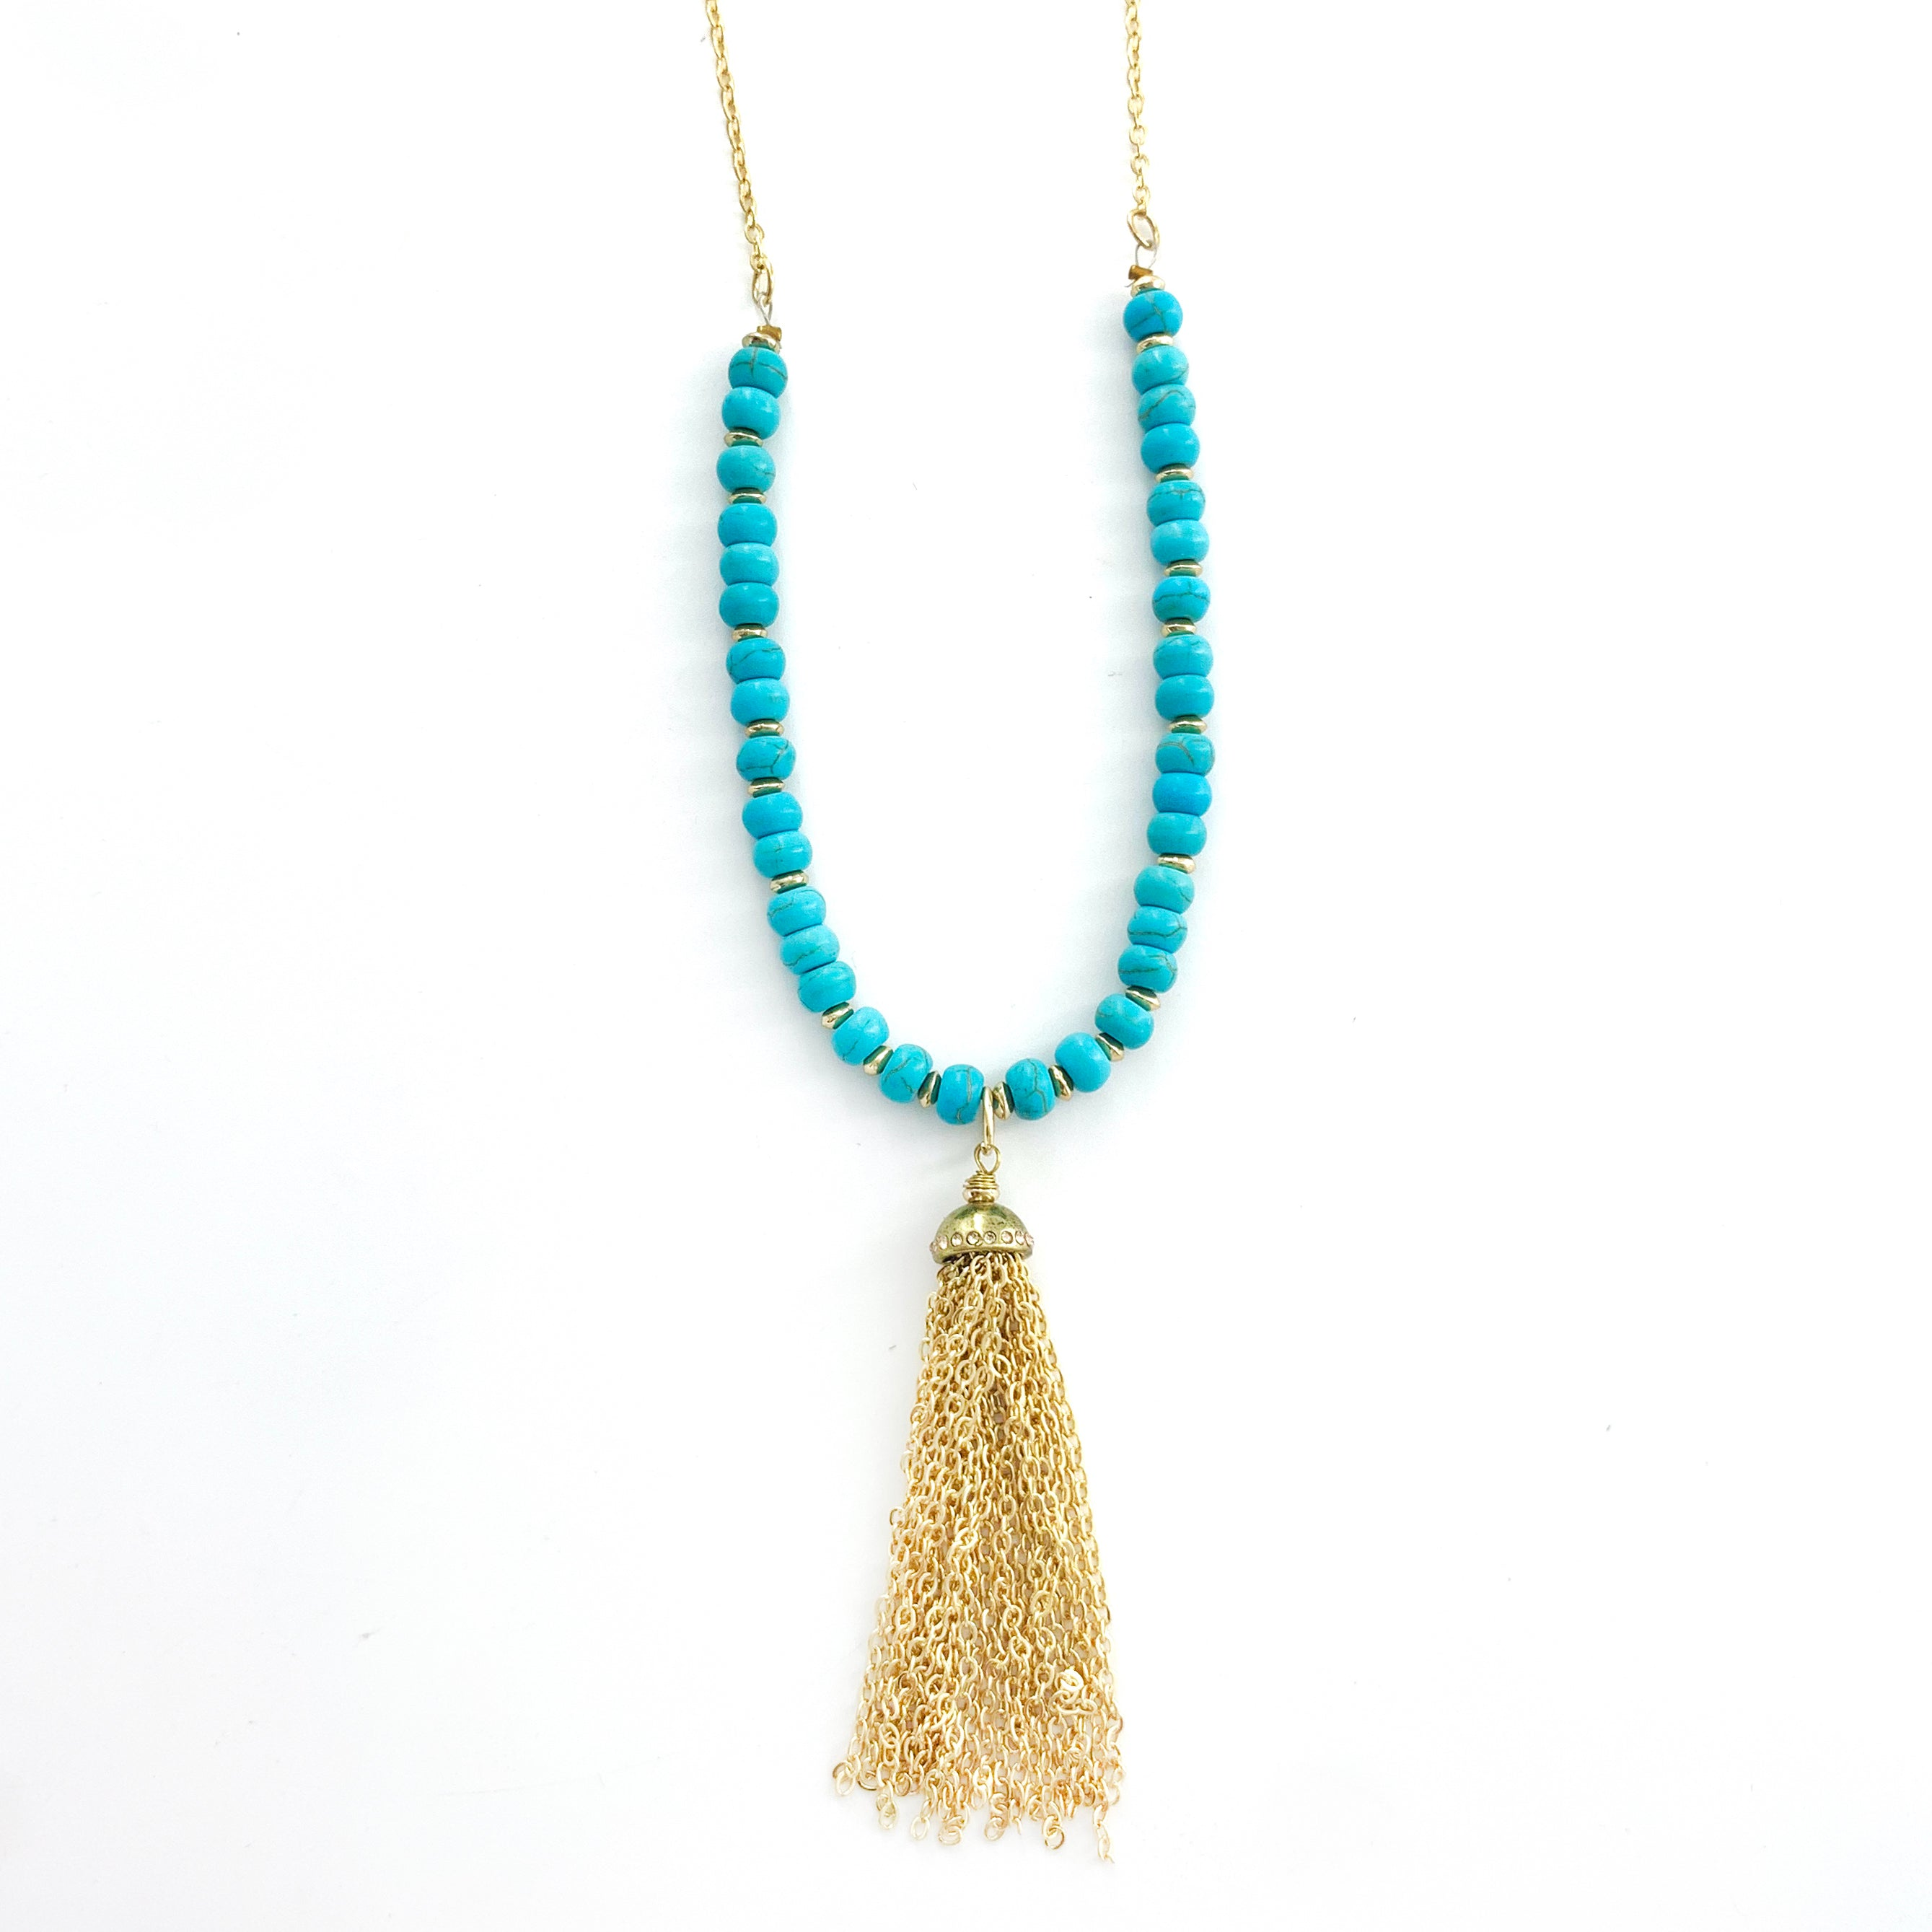 Turquoise Beads and Gold Tassel on Gold Chain